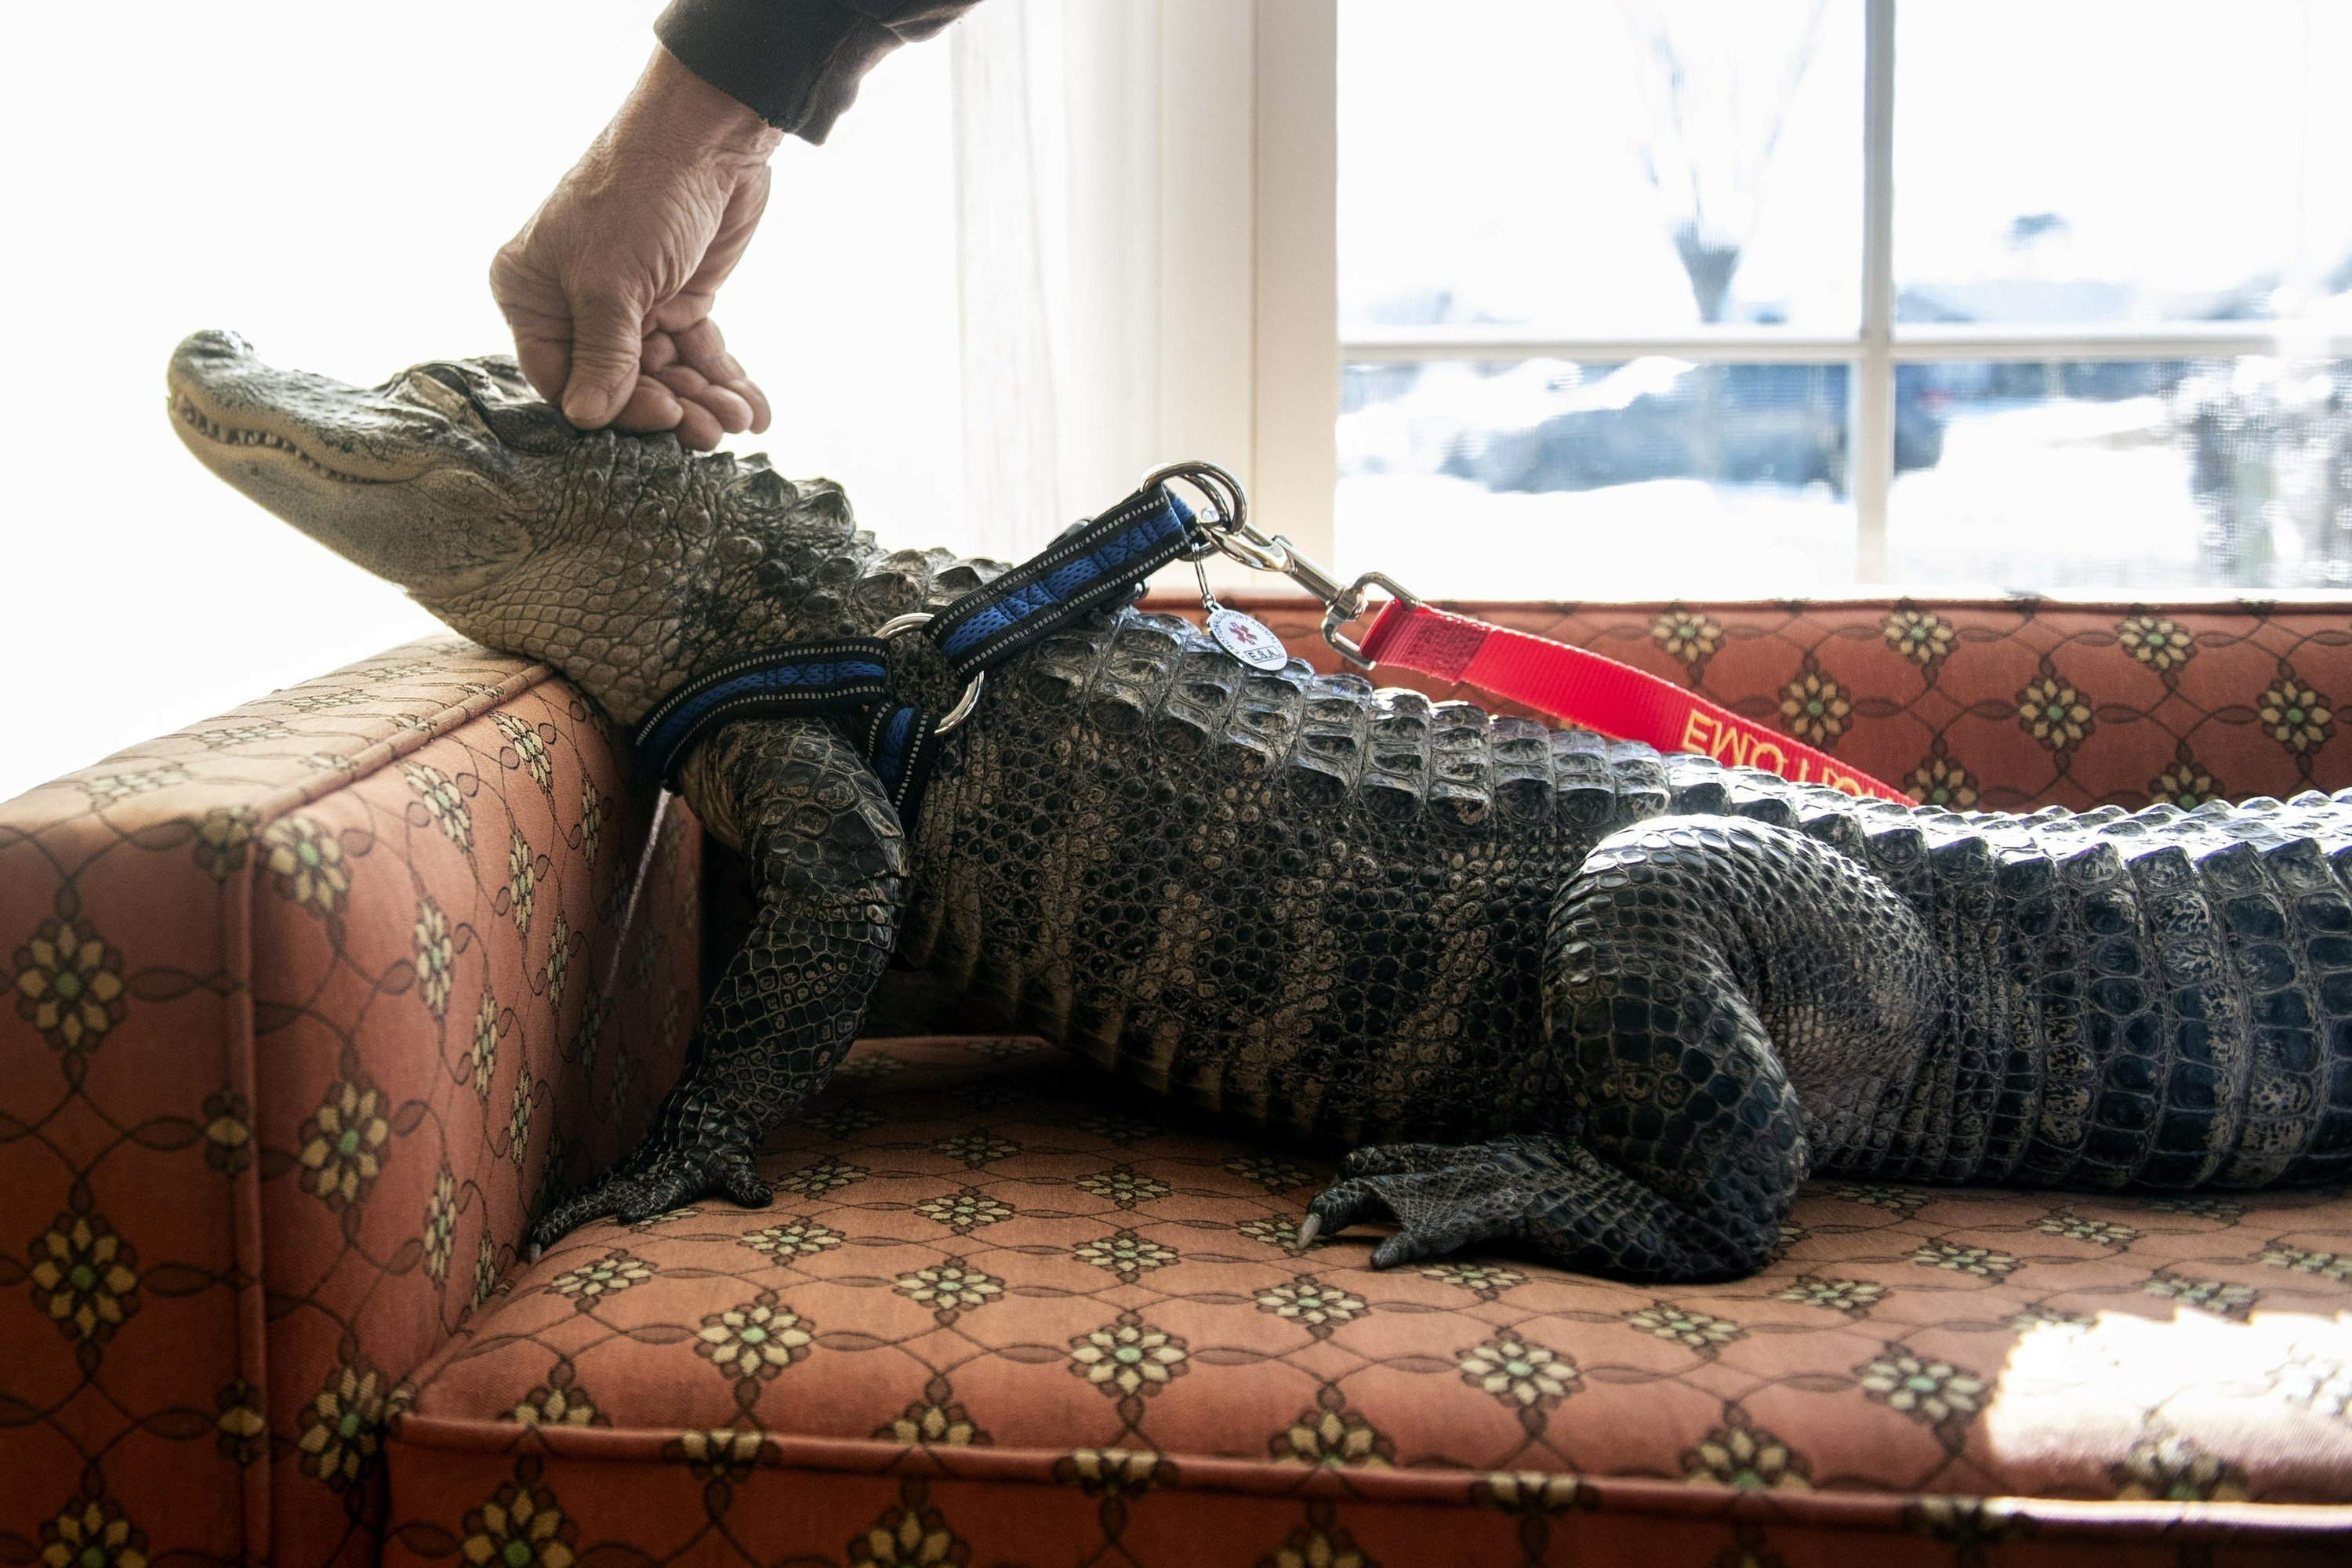 One unusual thing: PA man has emotional support gator for depression